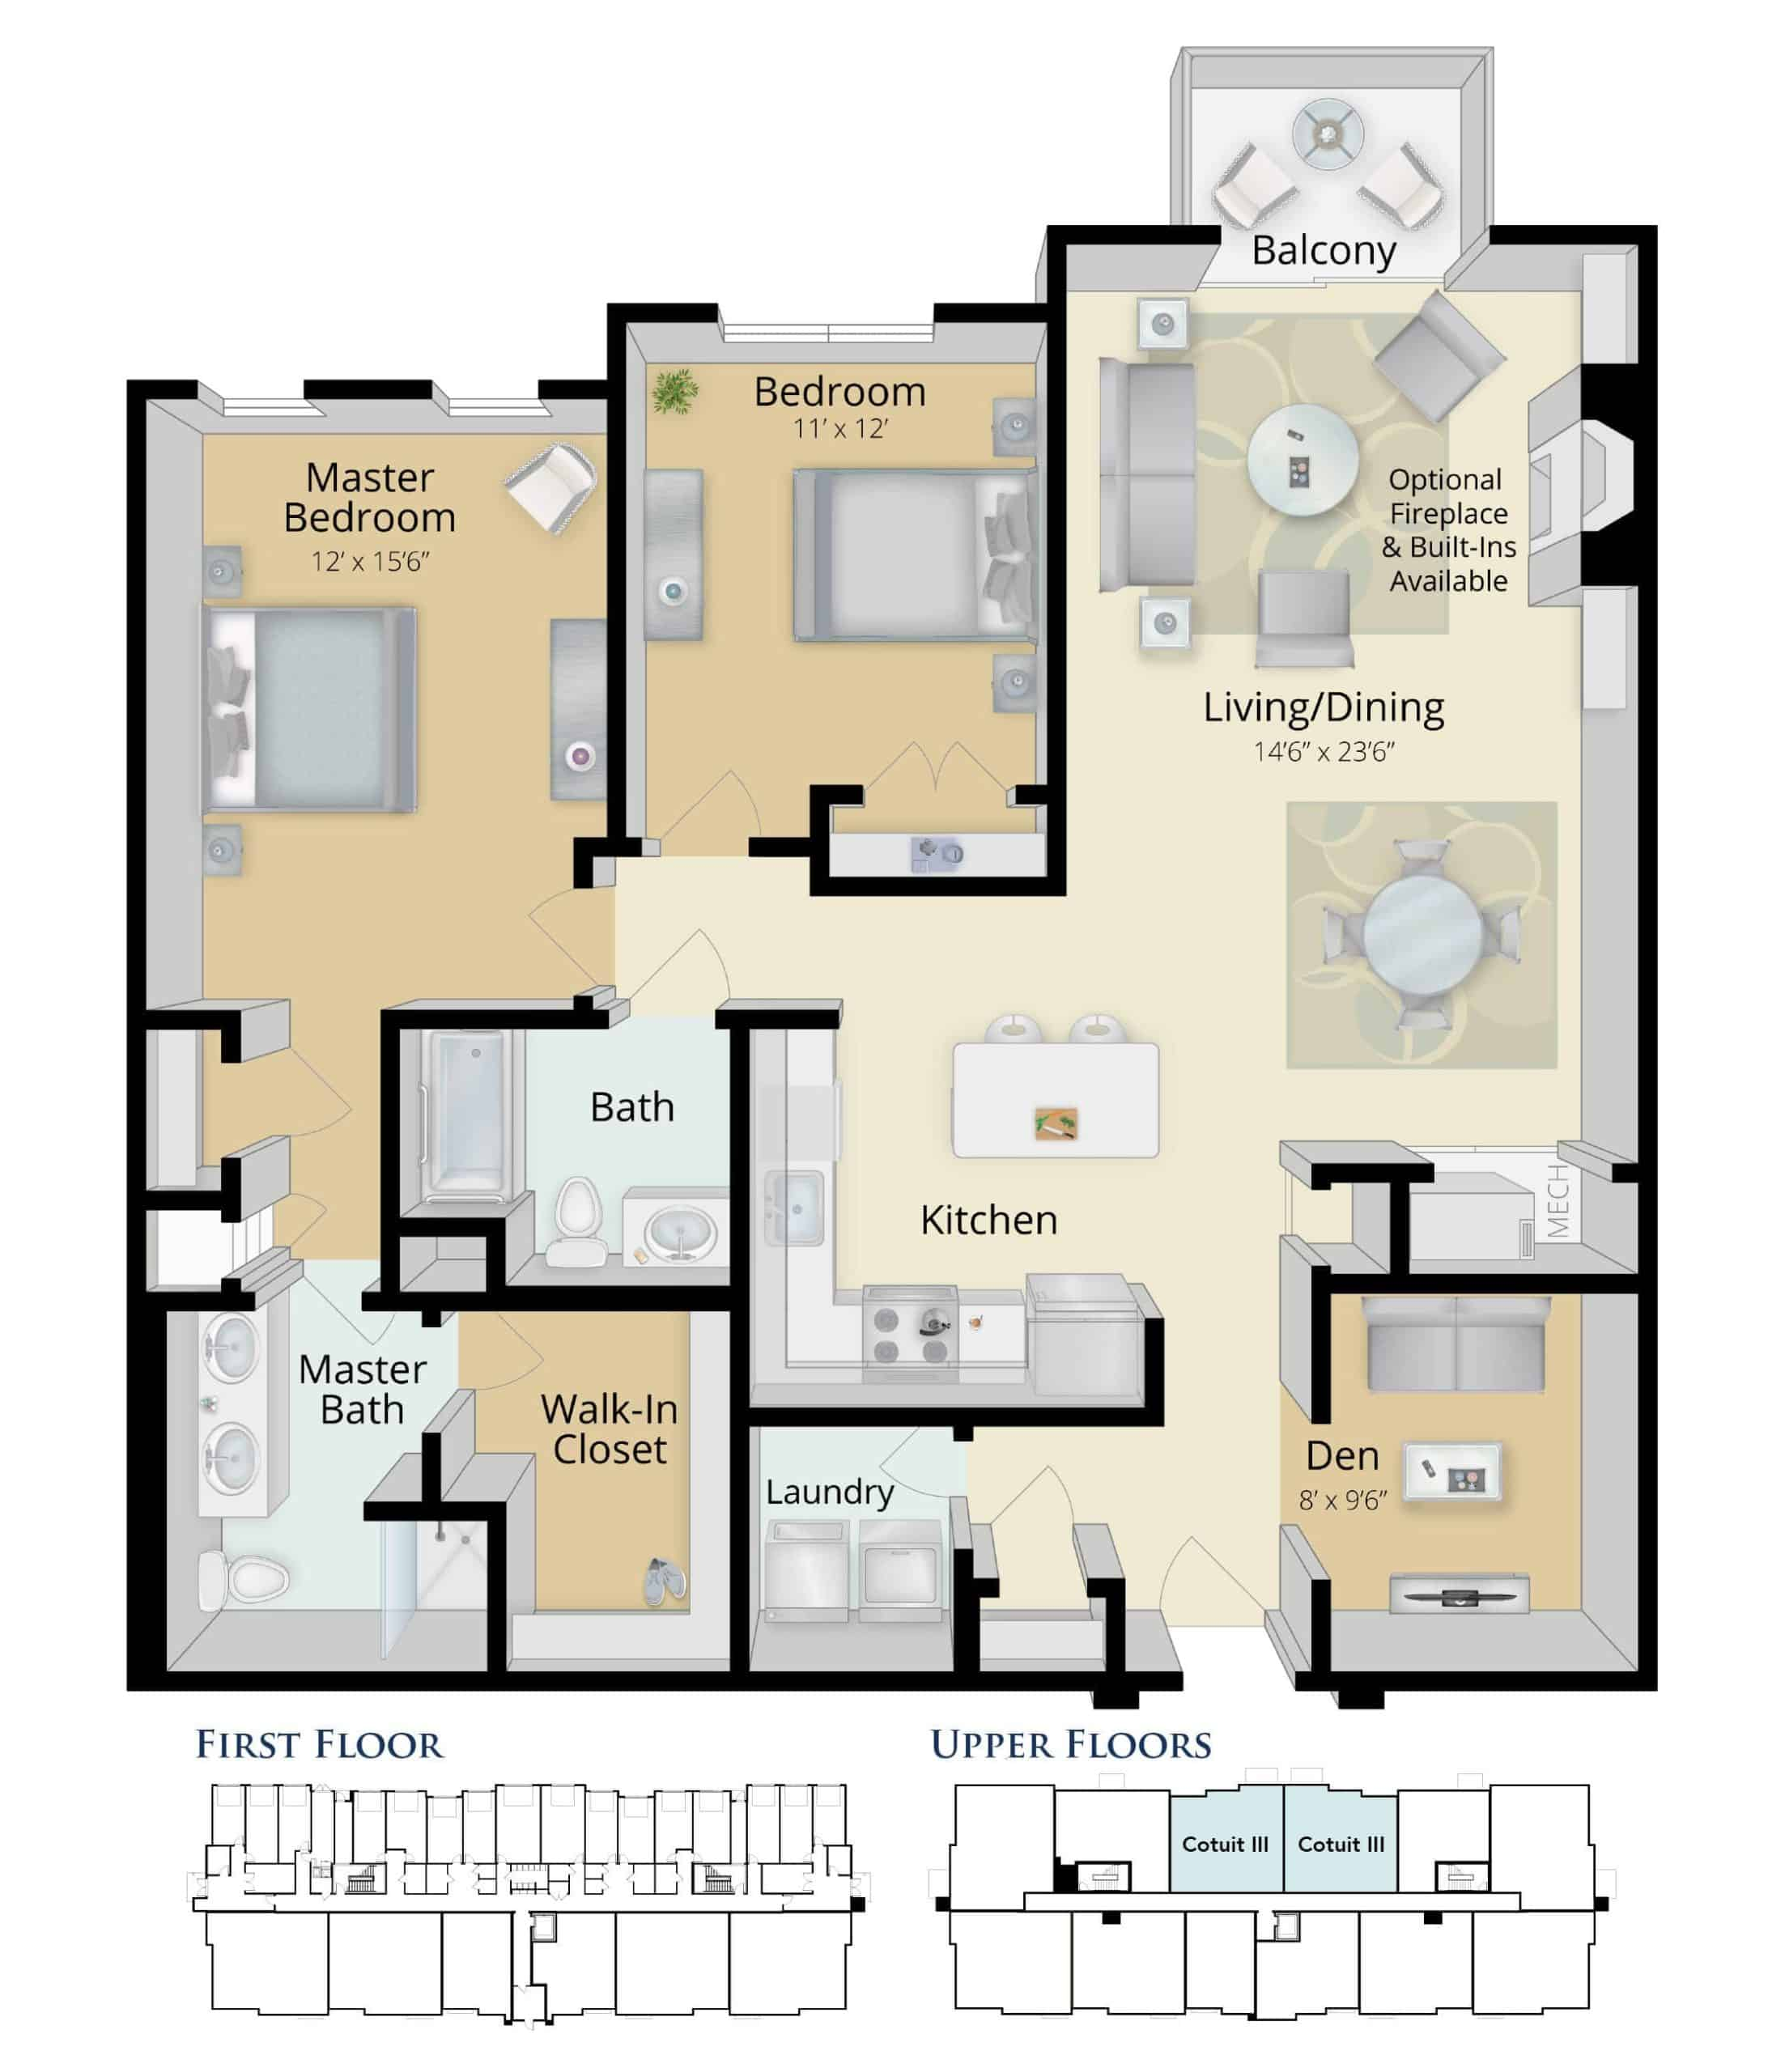 two bedroom floorplan Cotuit3 condo colony place